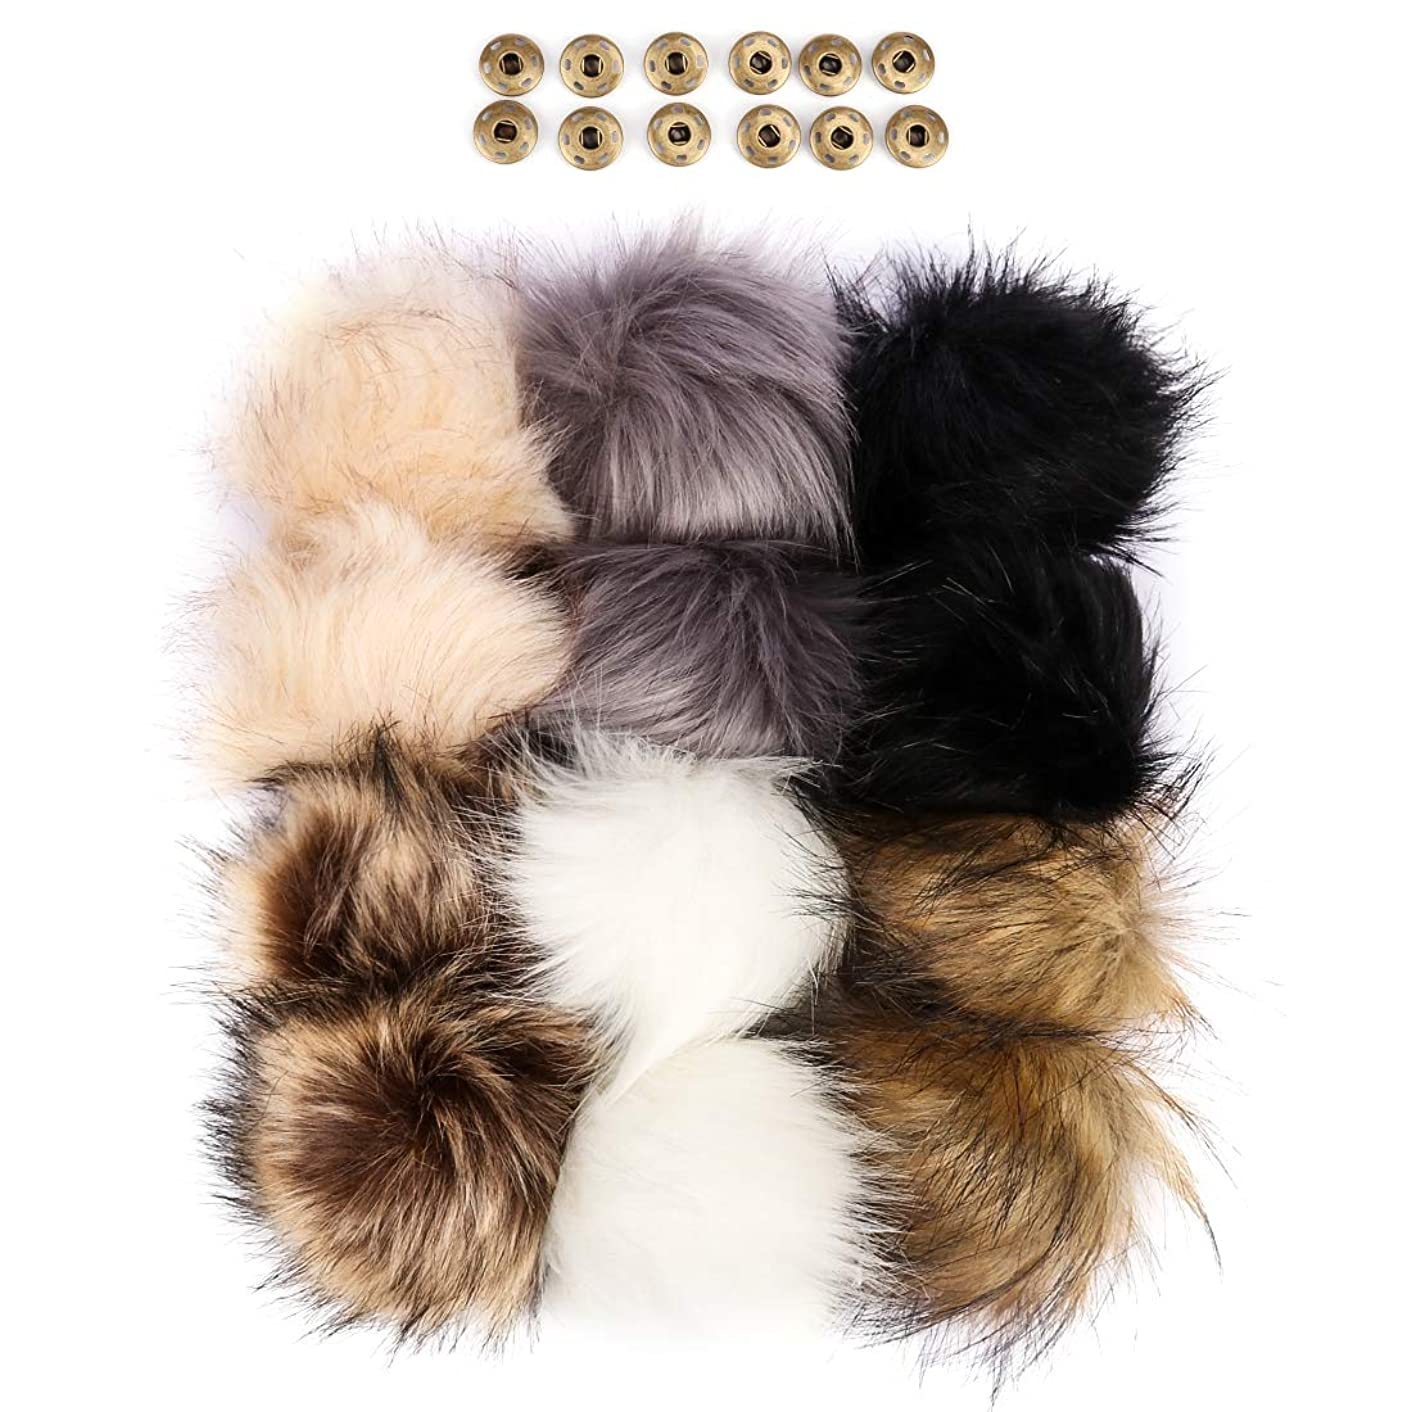 ANBALA 12 Pack Faux Fox Fur Pom Ball for Knitting Hat Garment Scarves DIY Accessories with Press Button Removable